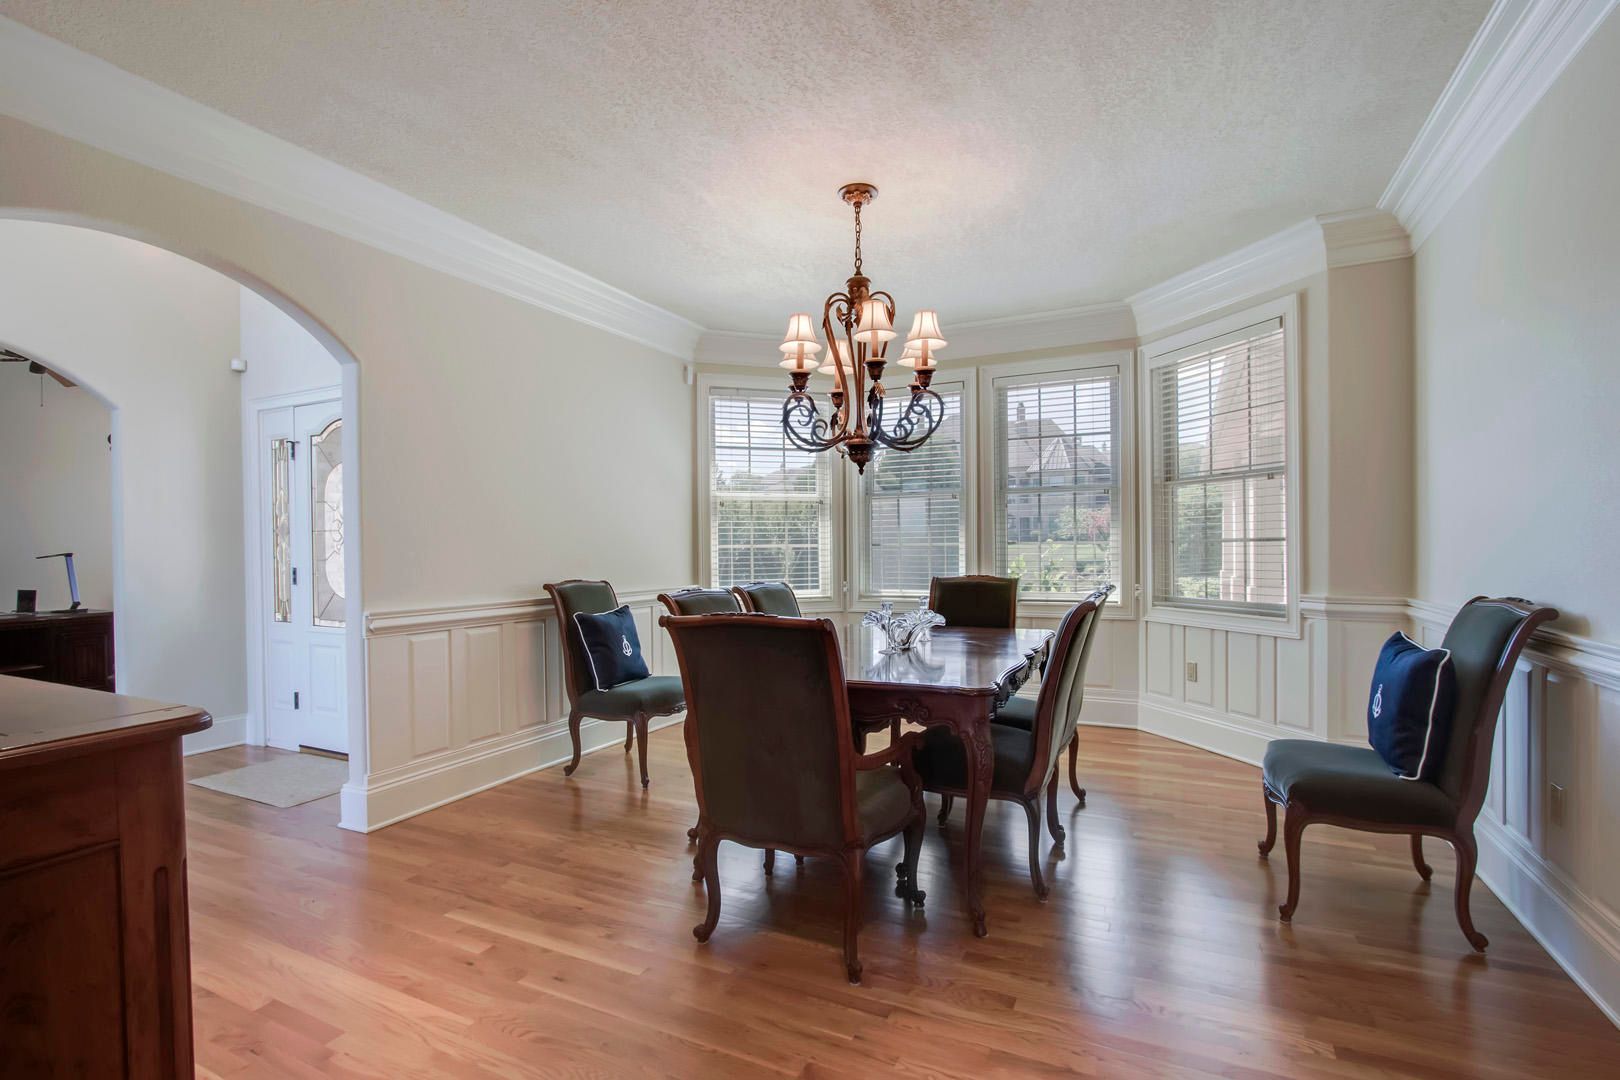 24_RockPointDrive_209_Dining01